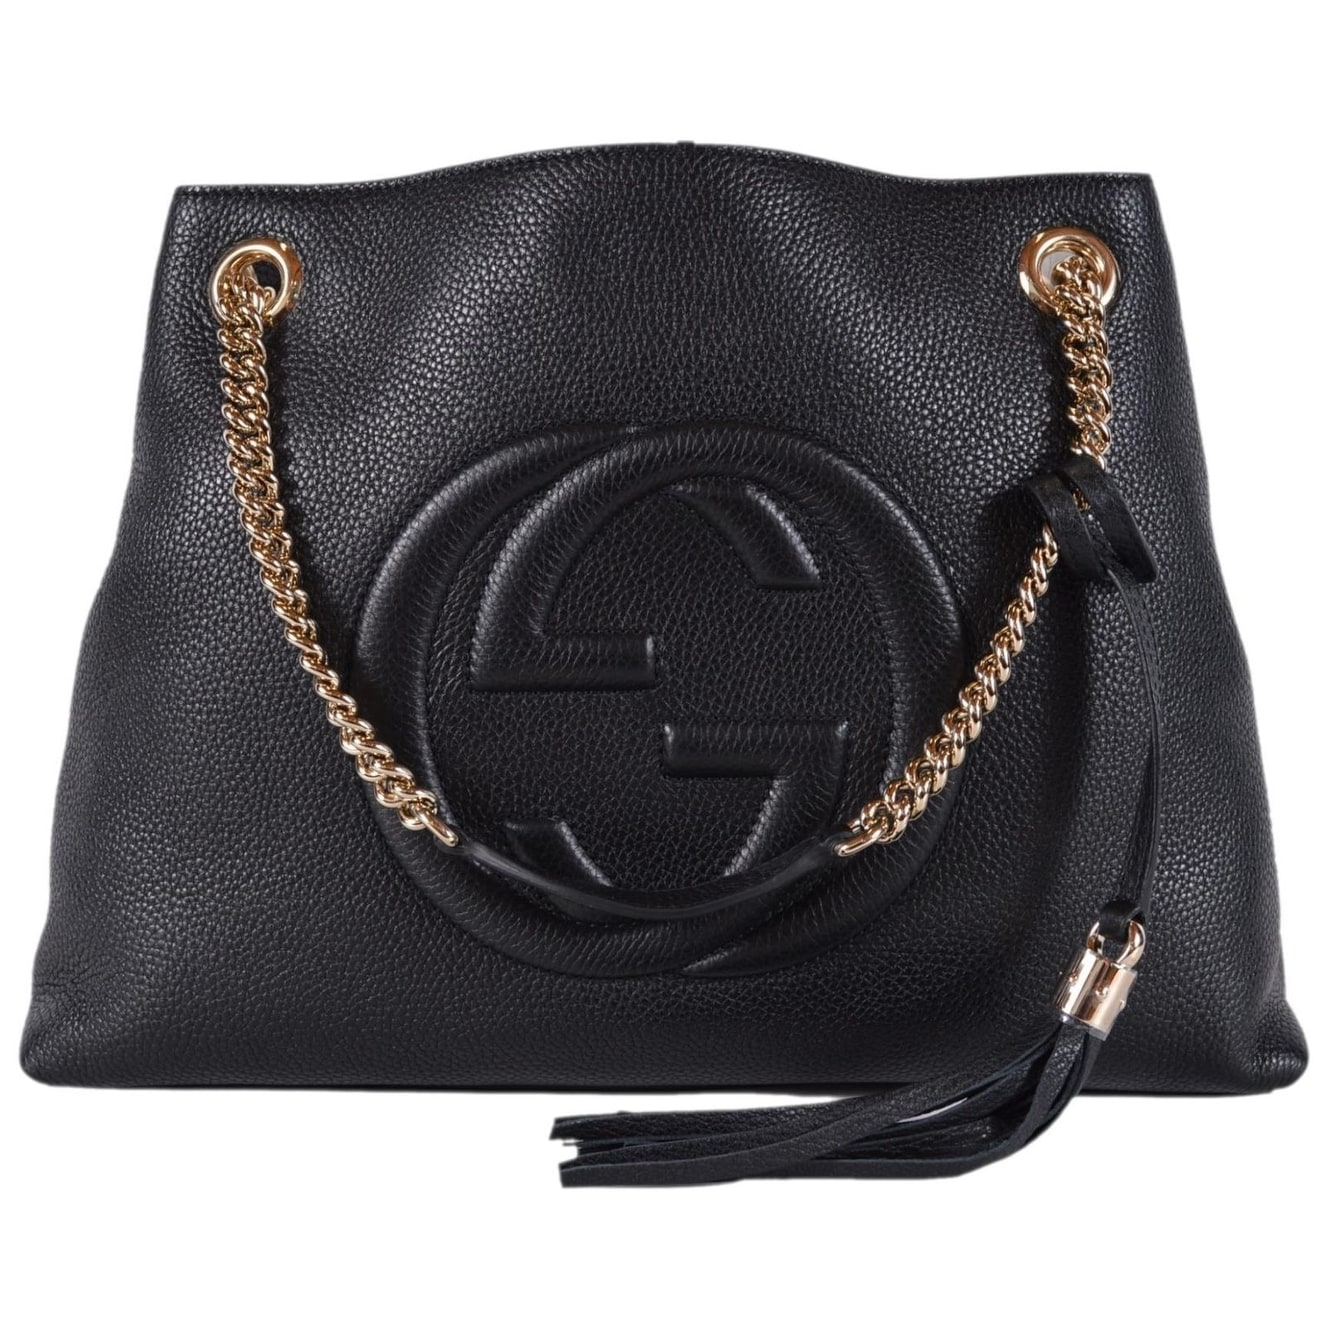 58380afc182 Shop Gucci Women s 536196 Black Leather SOHO Chain Strap Purse Handbag Tote  - Free Shipping Today - Overstock - 25576109